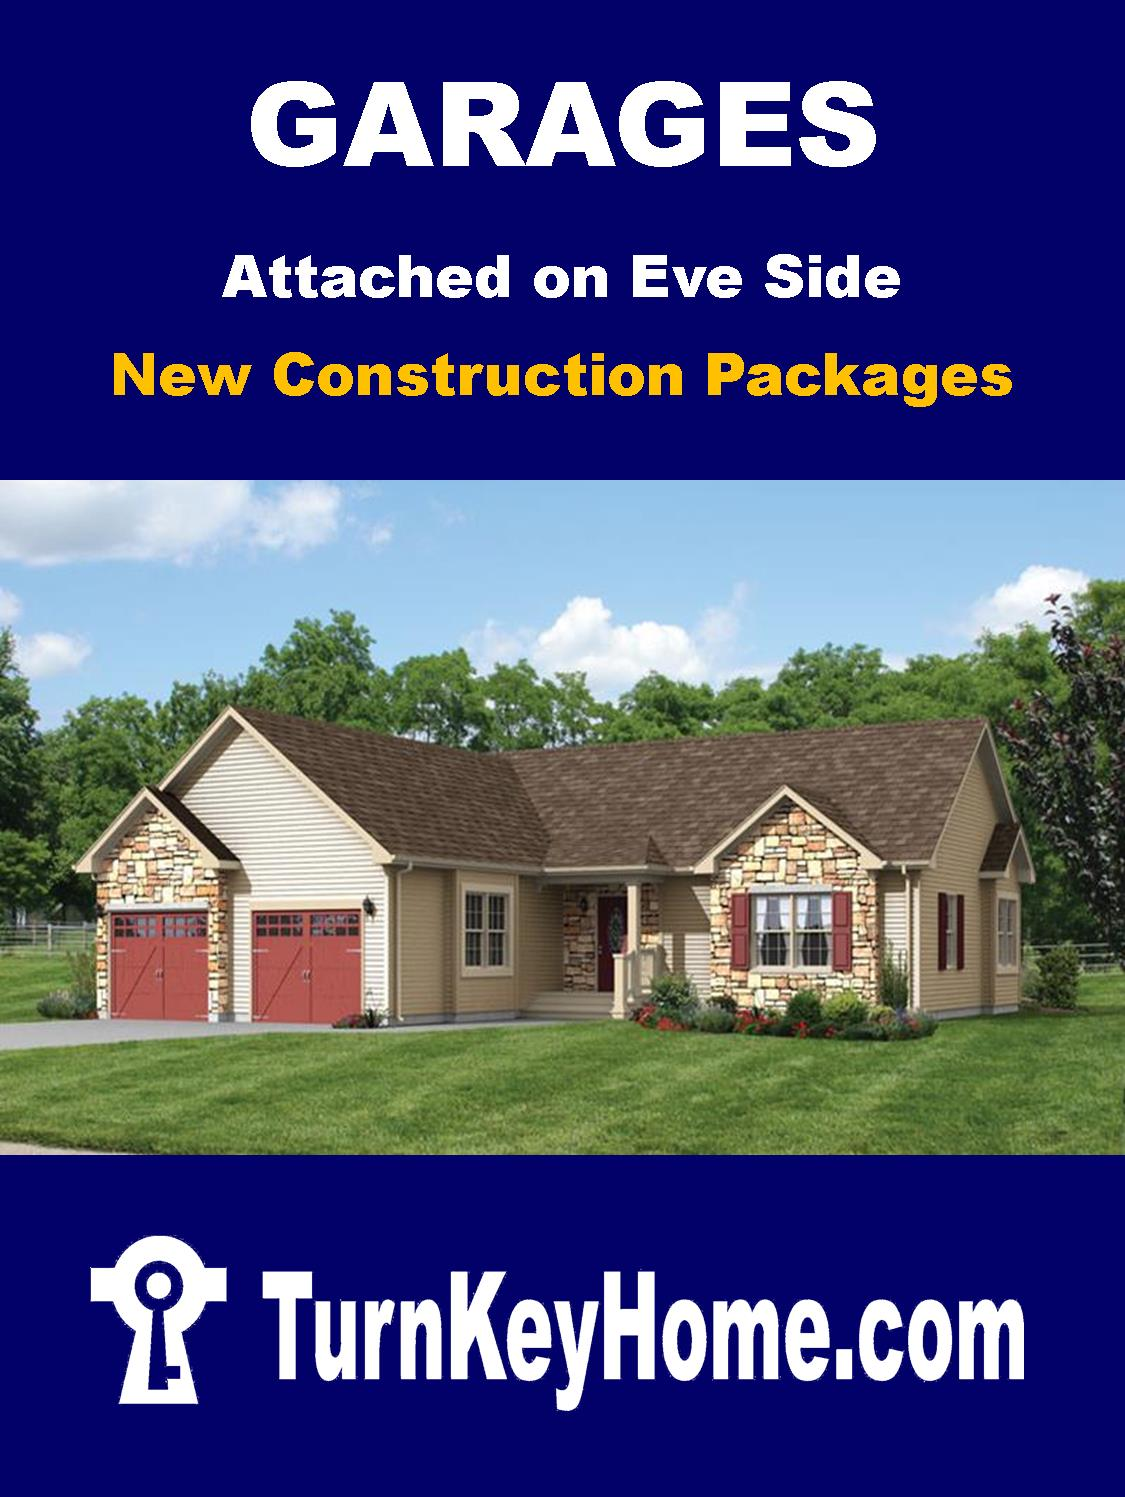 Garage.Attached.Eve.Side.New.Construction.Package.Icon.03.06.14